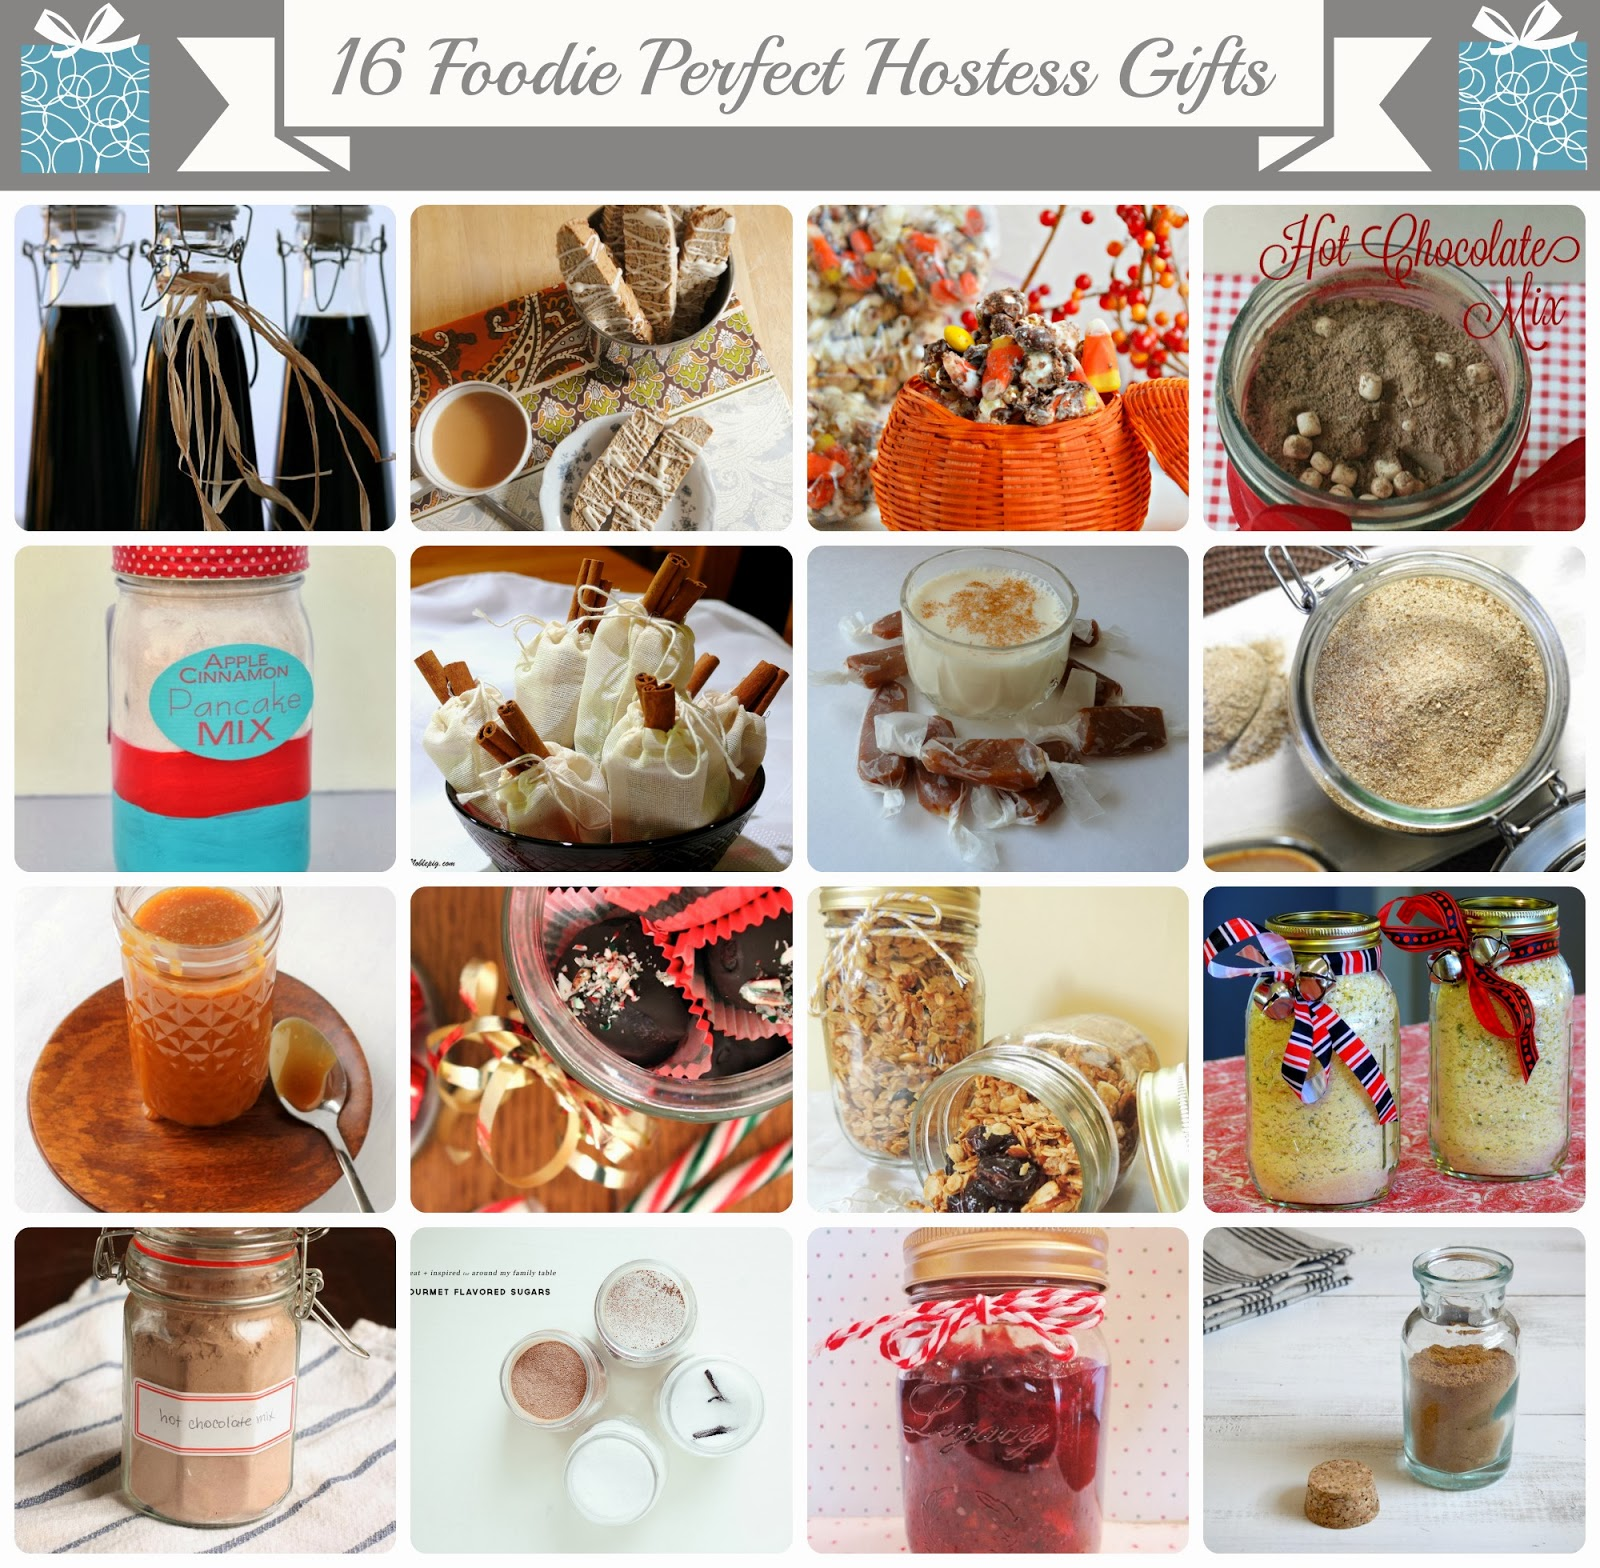 Frugal Foodie Mama: 16 Foodie Perfect Holiday Hostess Gifts